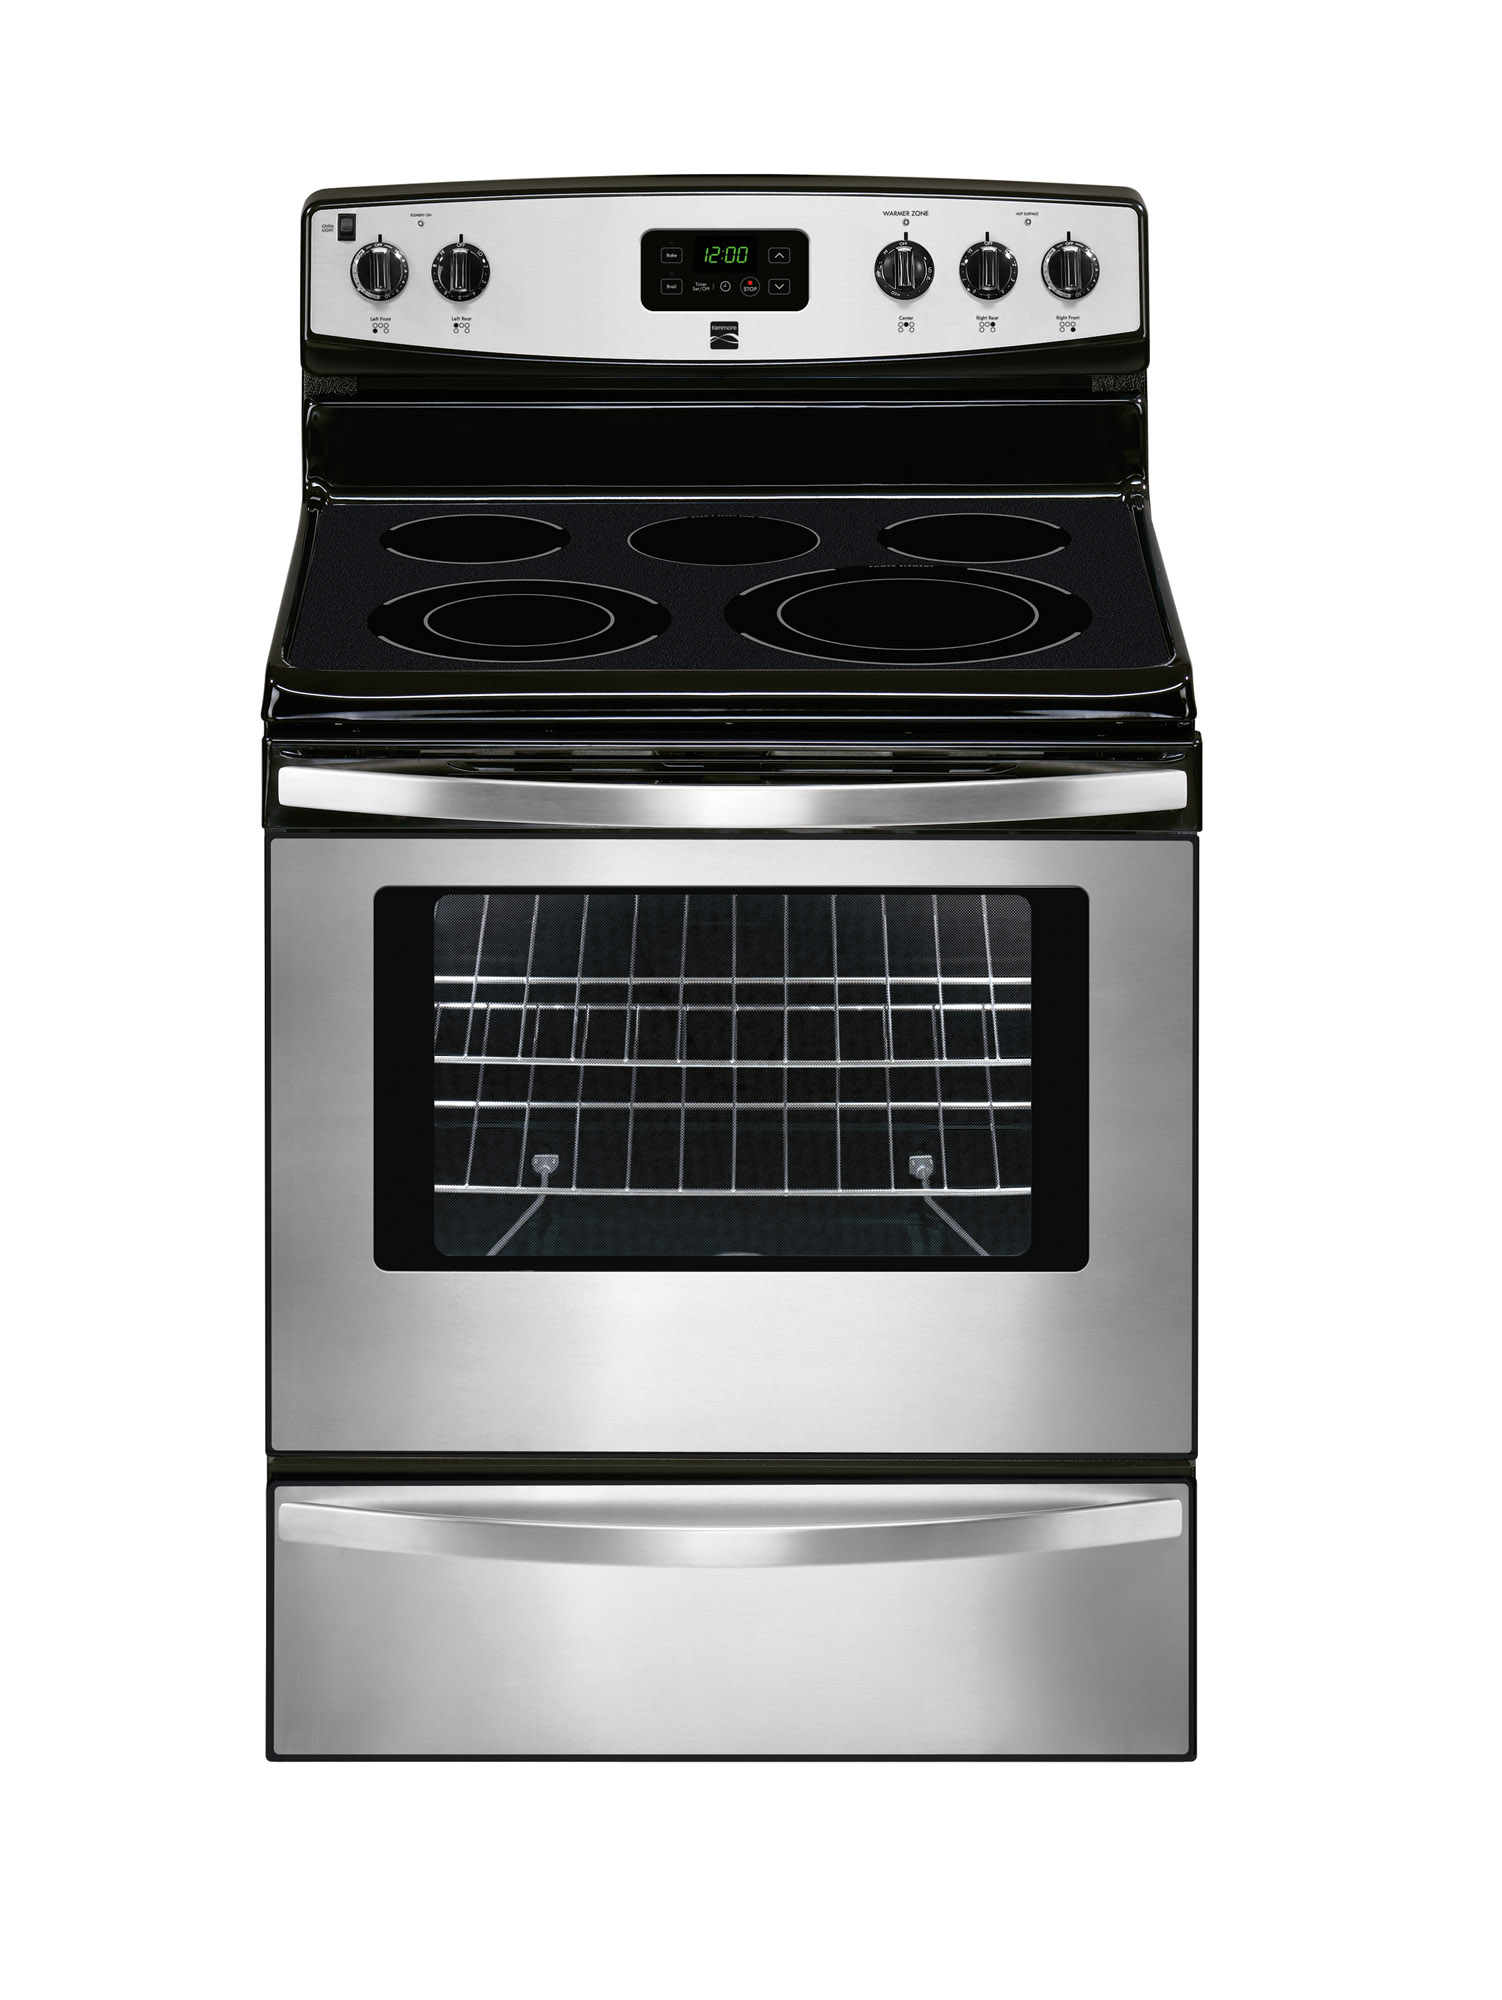 Kenmore Range/Stove/Oven Model 790.91413013 Parts